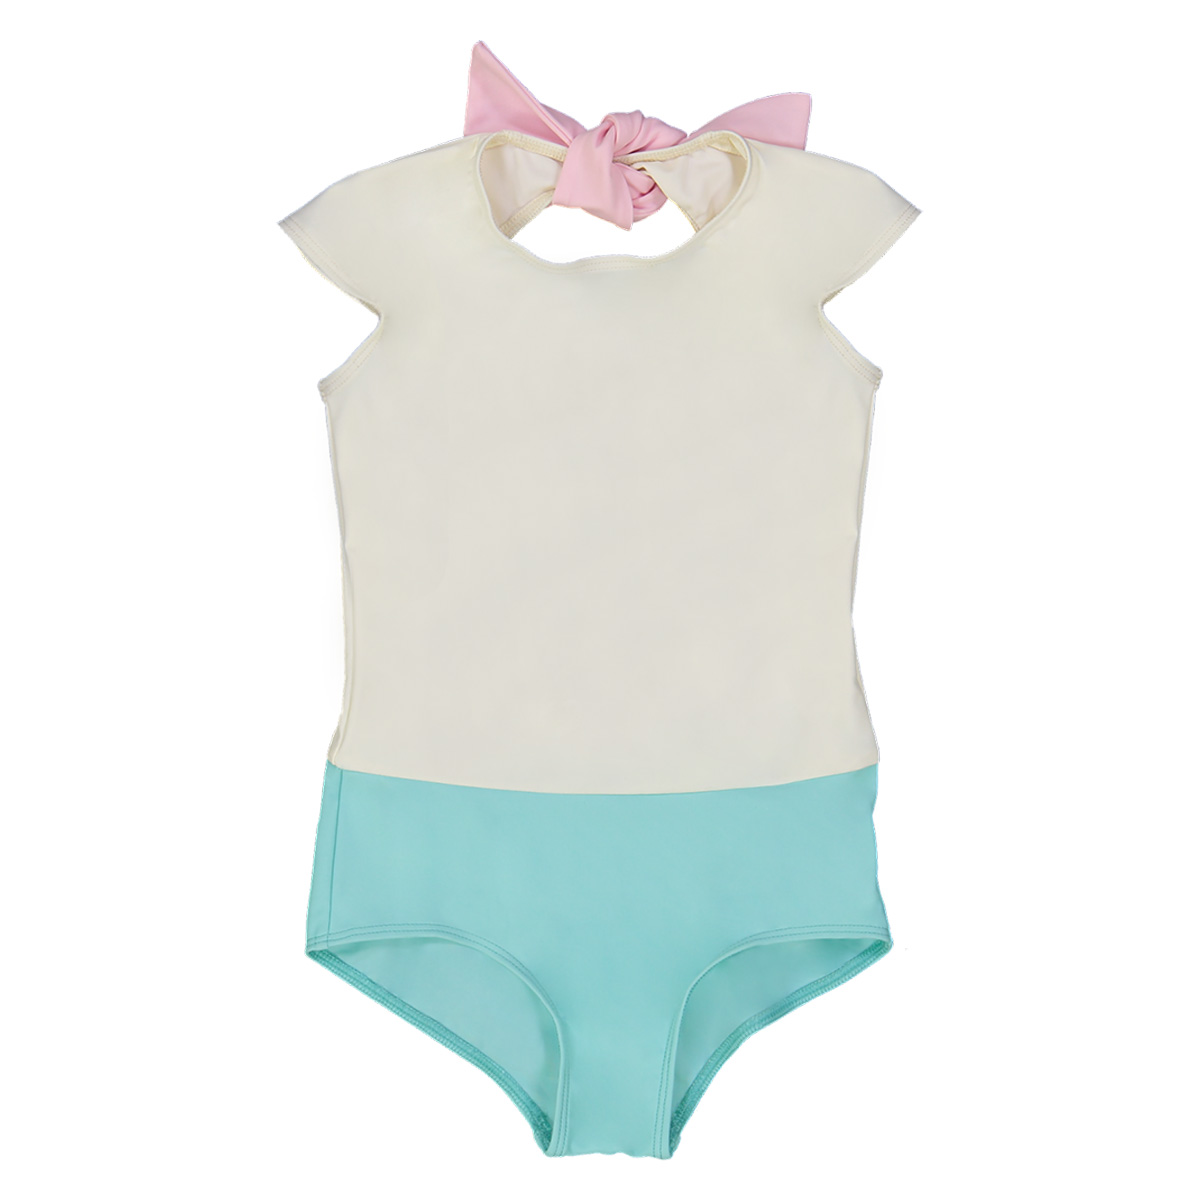 Canopea One Piece Prisca Swimsuit with cap-sleeves in Aqua & White